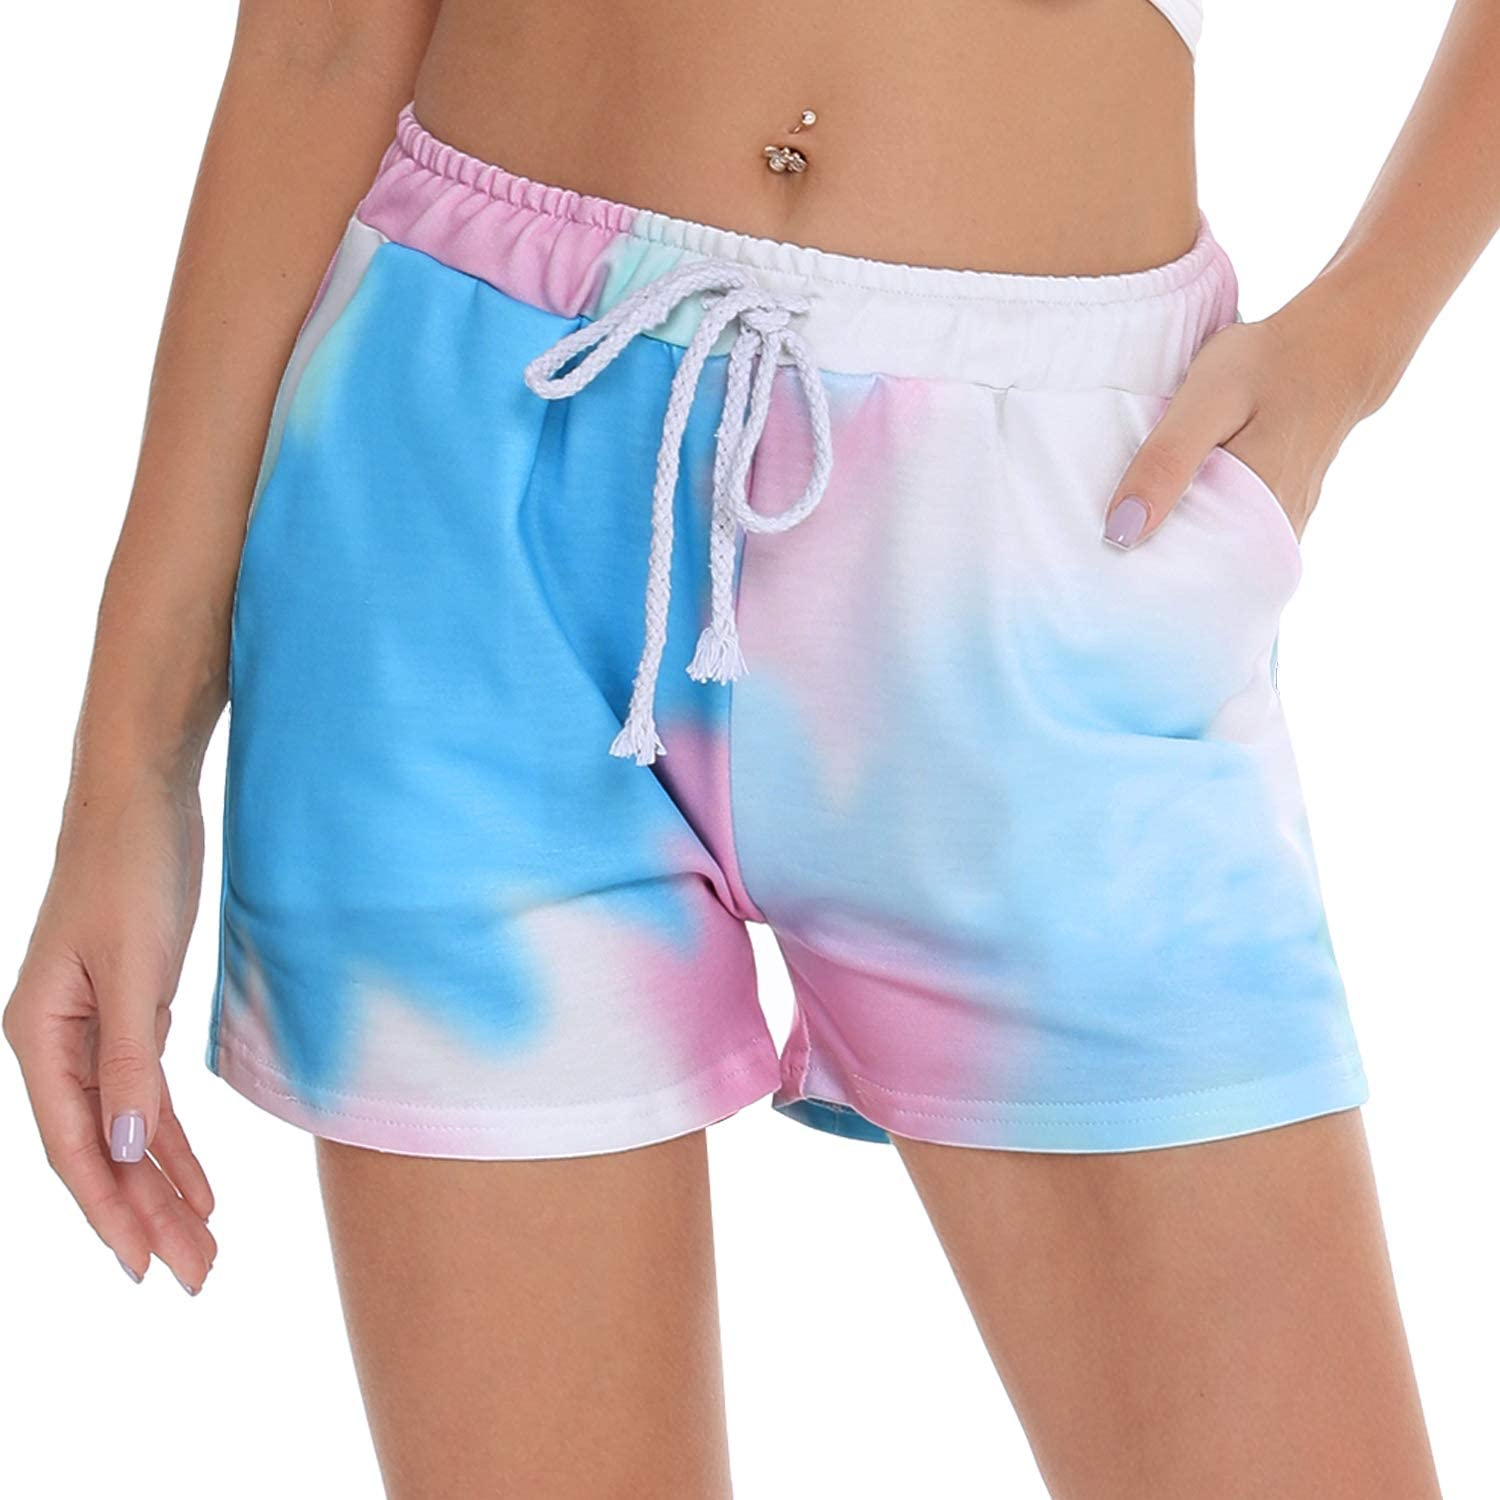 Irevial Women Tie Dye Pajamas Shorts Drawstring Exercise Shorts Sleeping Bottoms Sweatpants with Pockets